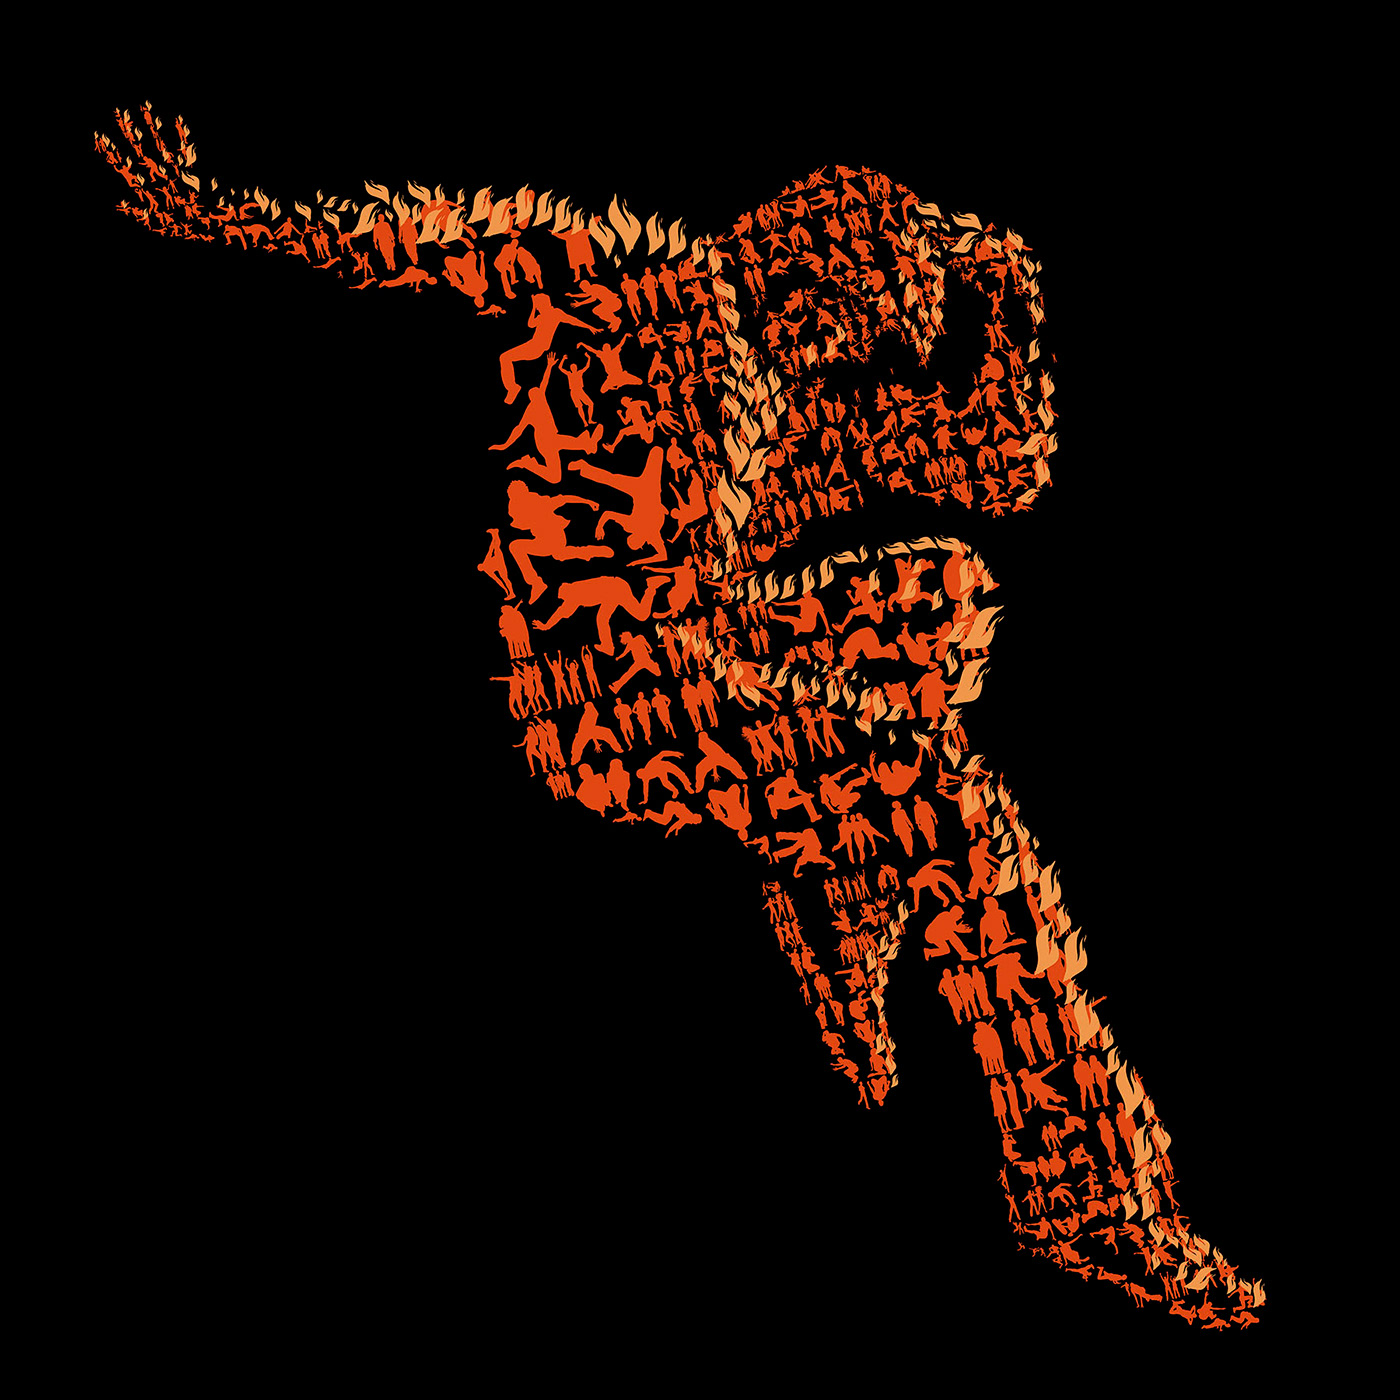 energy drink campaign Dynamic mosaic photomosaic Urban drive study Work  DANCE   sihlouette people